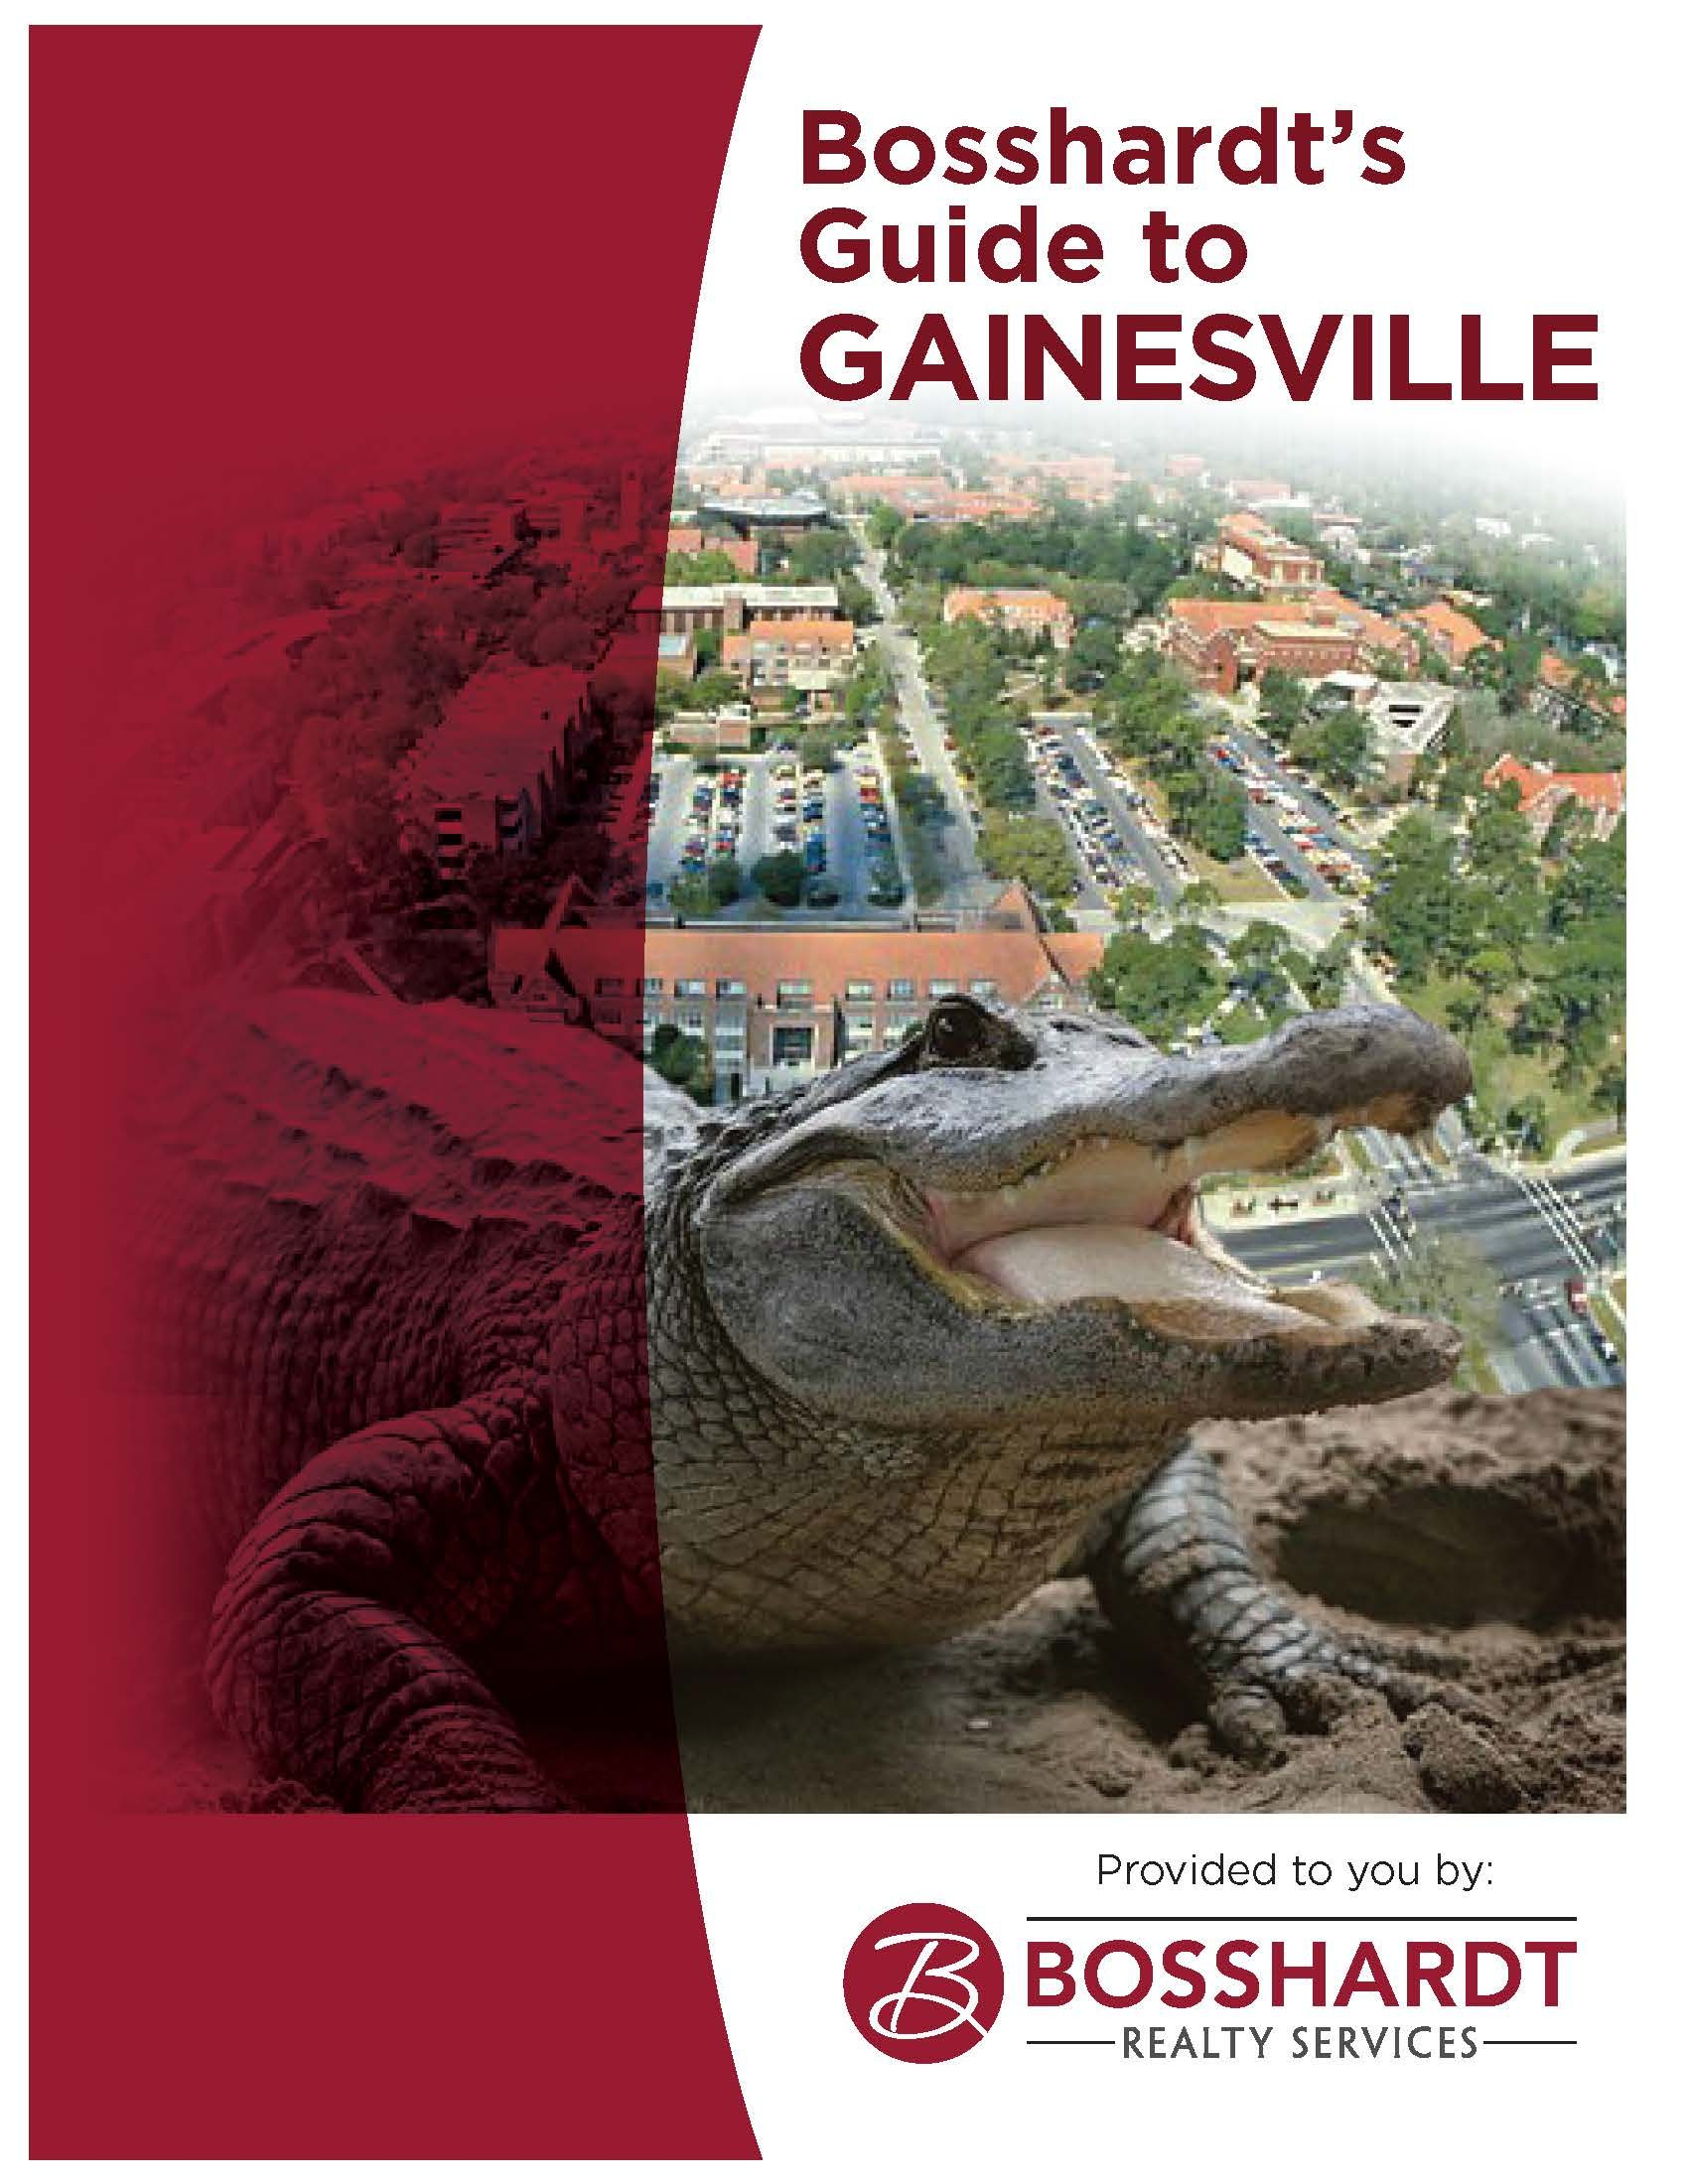 Live in Gainesville? Thinking of moving here? This is everything you need to know about Gainesville, and how to establish a residence.  www.bosshardtrealty.com #BosshardtRealty #GainesvilleFL  @Bosshardt